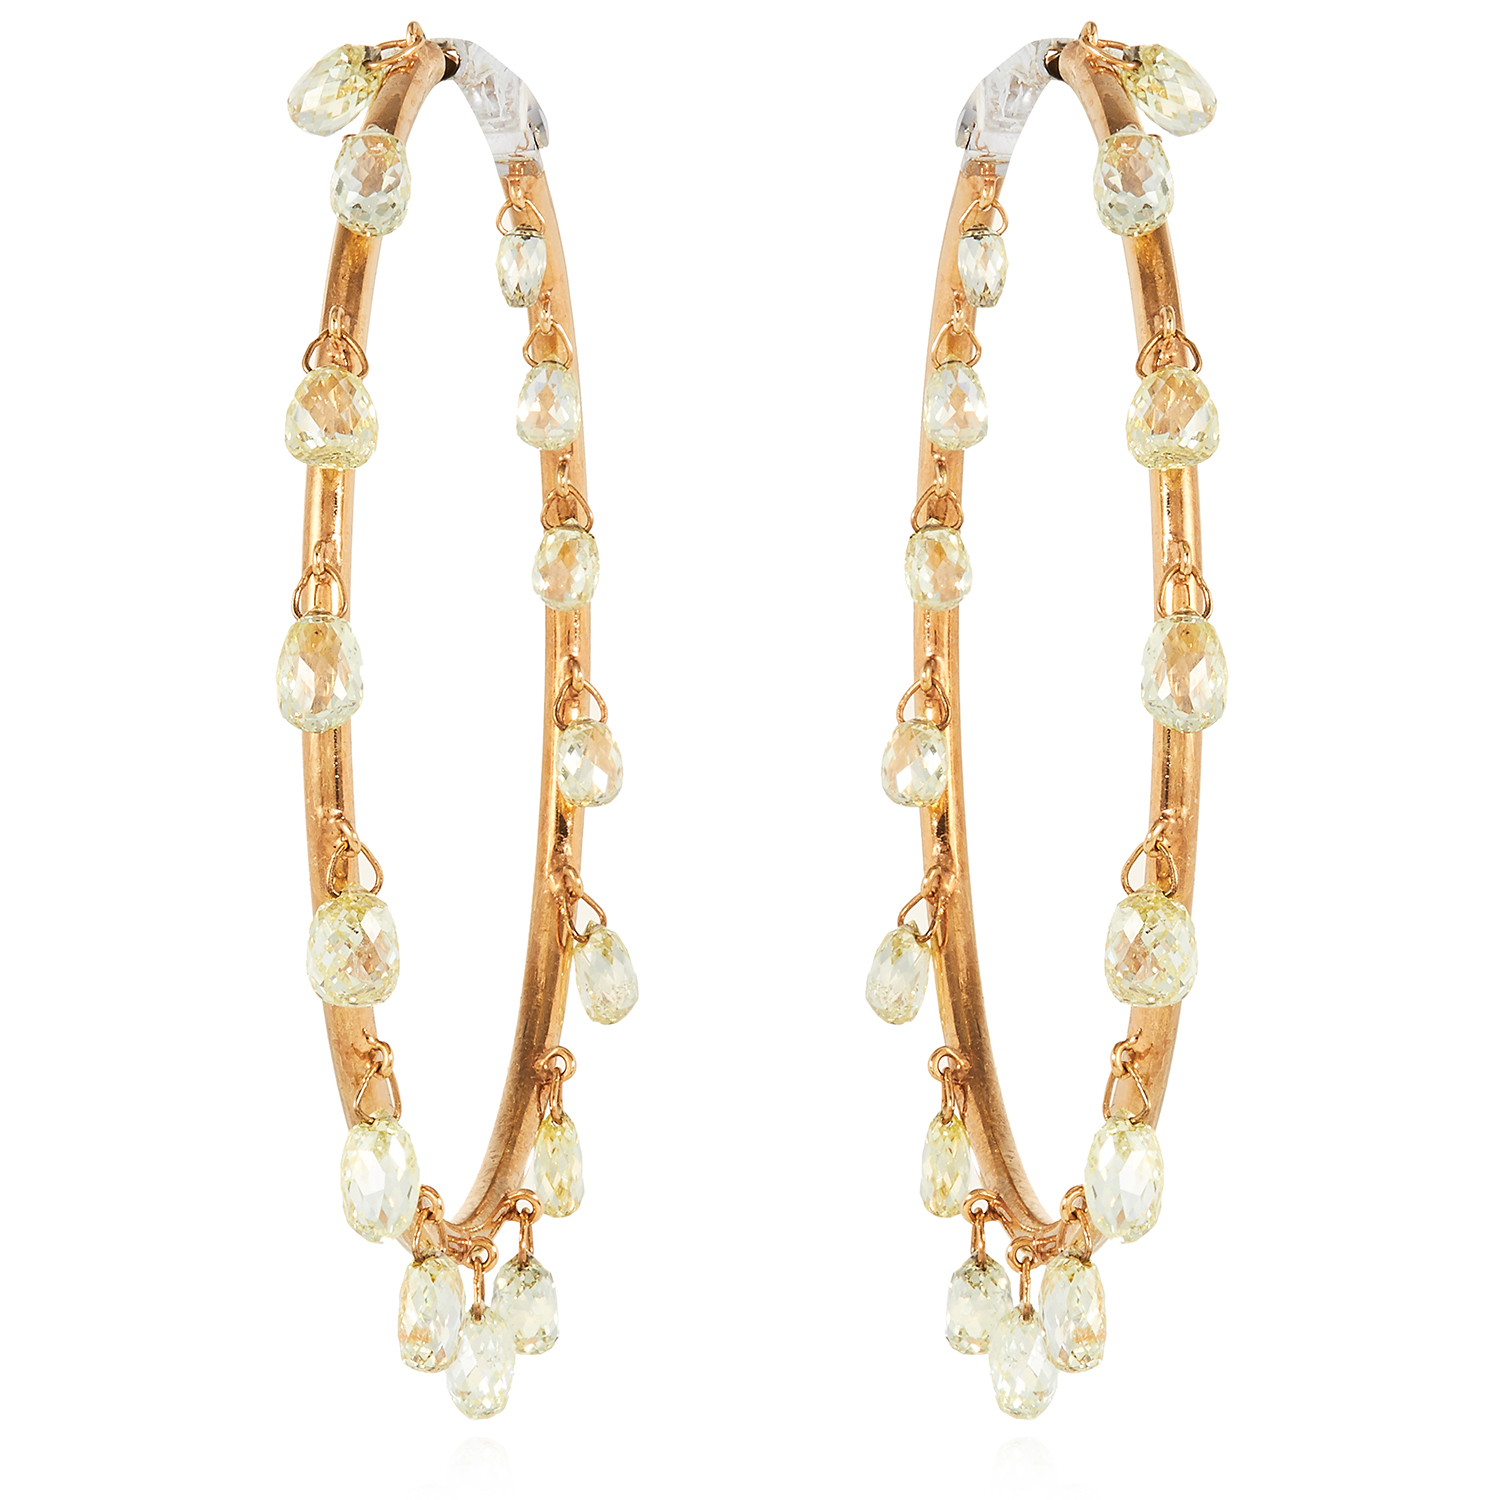 A PAIR OF 6.50 CARAT FANCY YELLOW DIAMOND HOOP EARRINGS in 18ct yellow gold, each designed as a